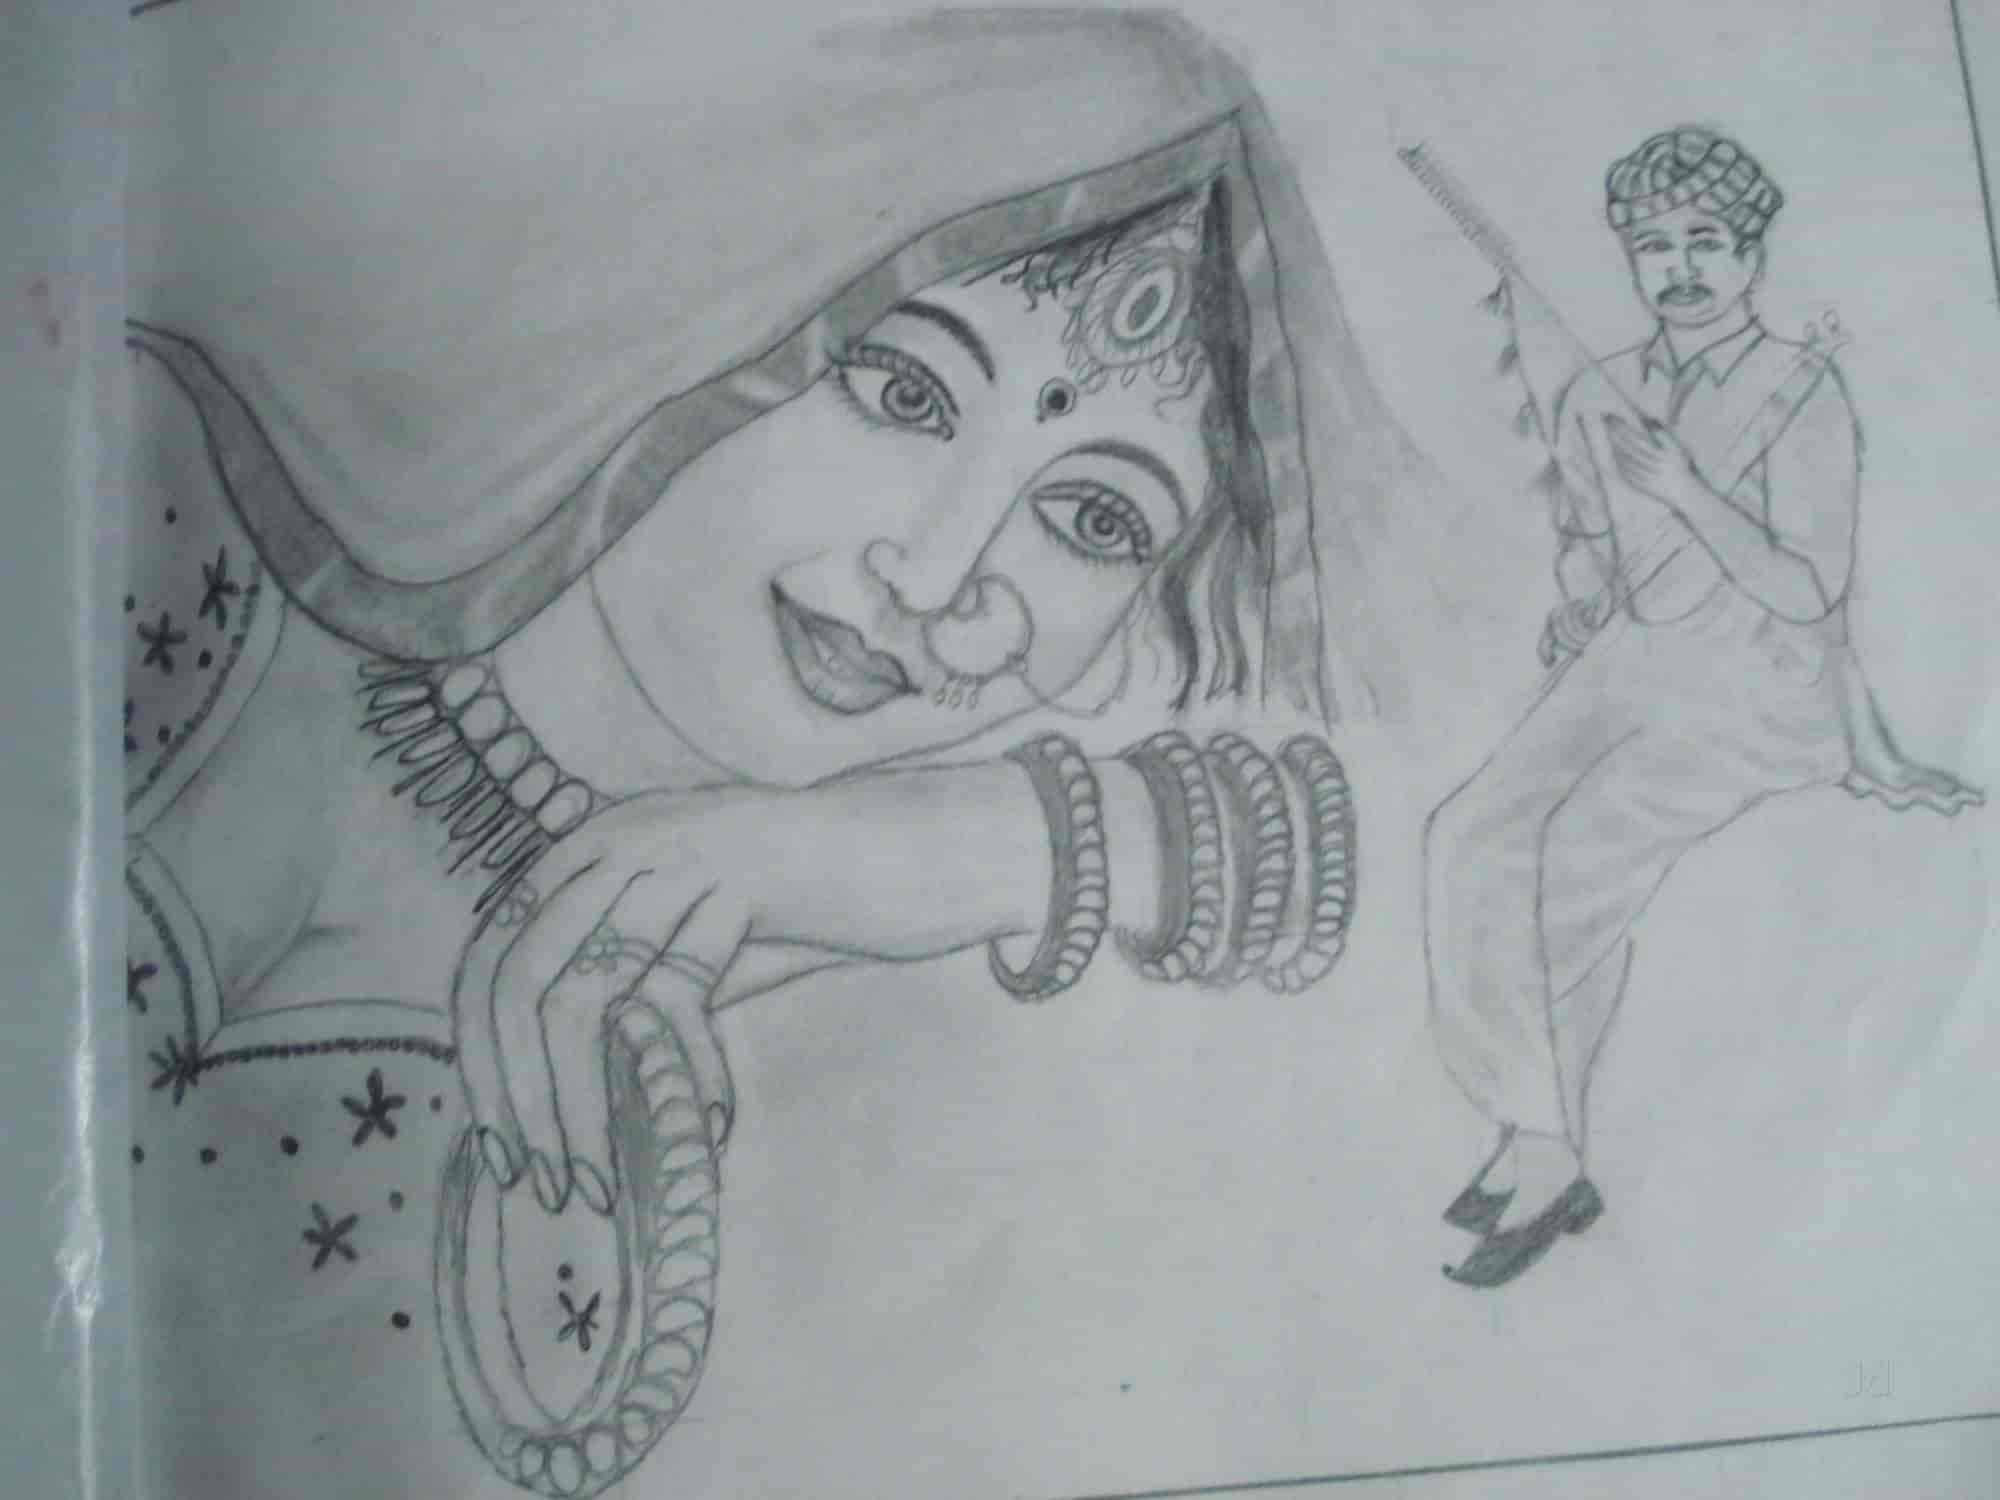 Pencil sketching classes sketch painting classes for children photos mumbai painting classes